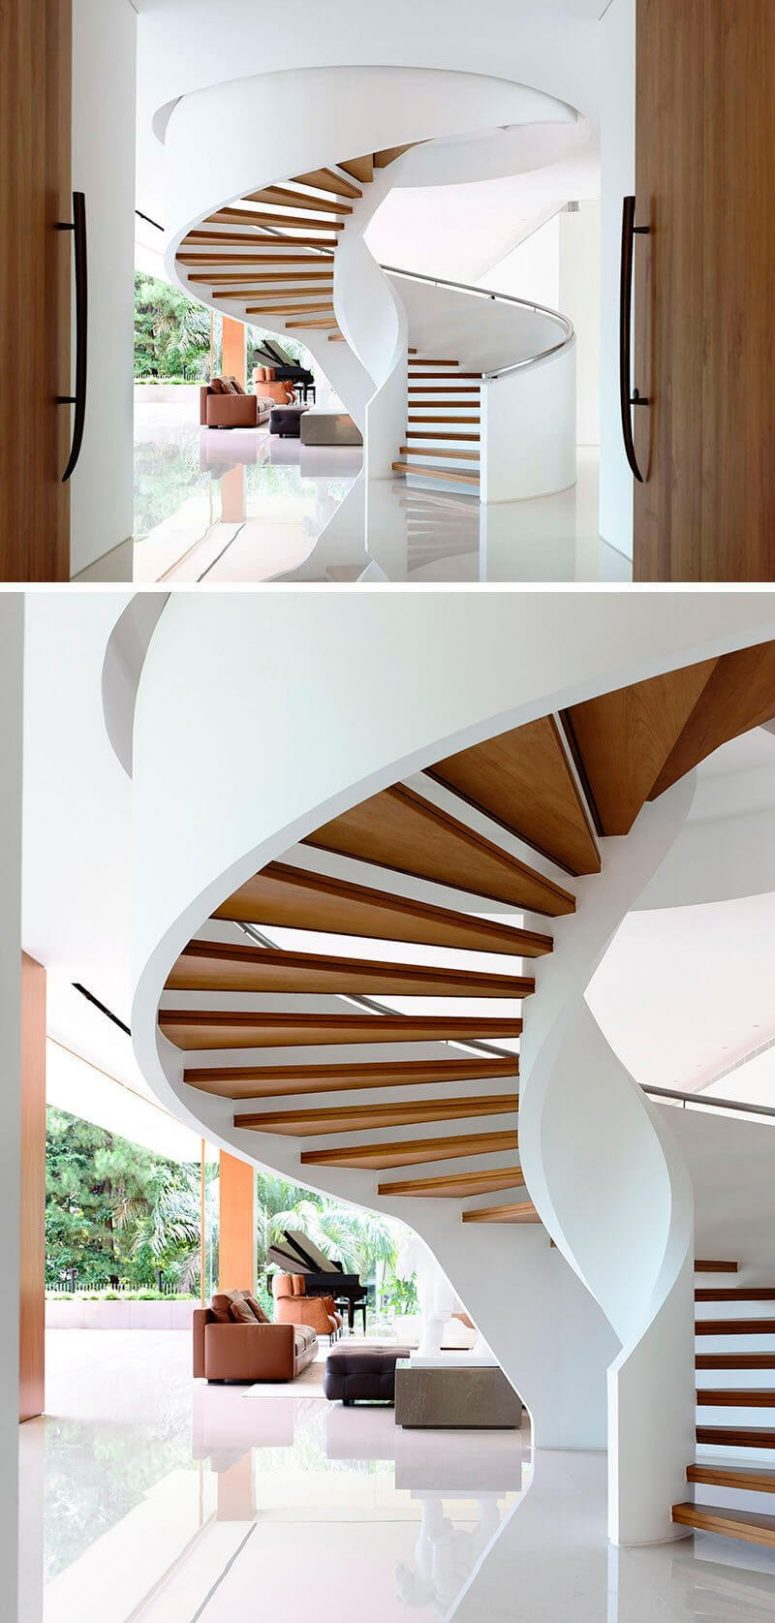 50 Uniquely Awesome Spiral Staircase Ideas For Your Home